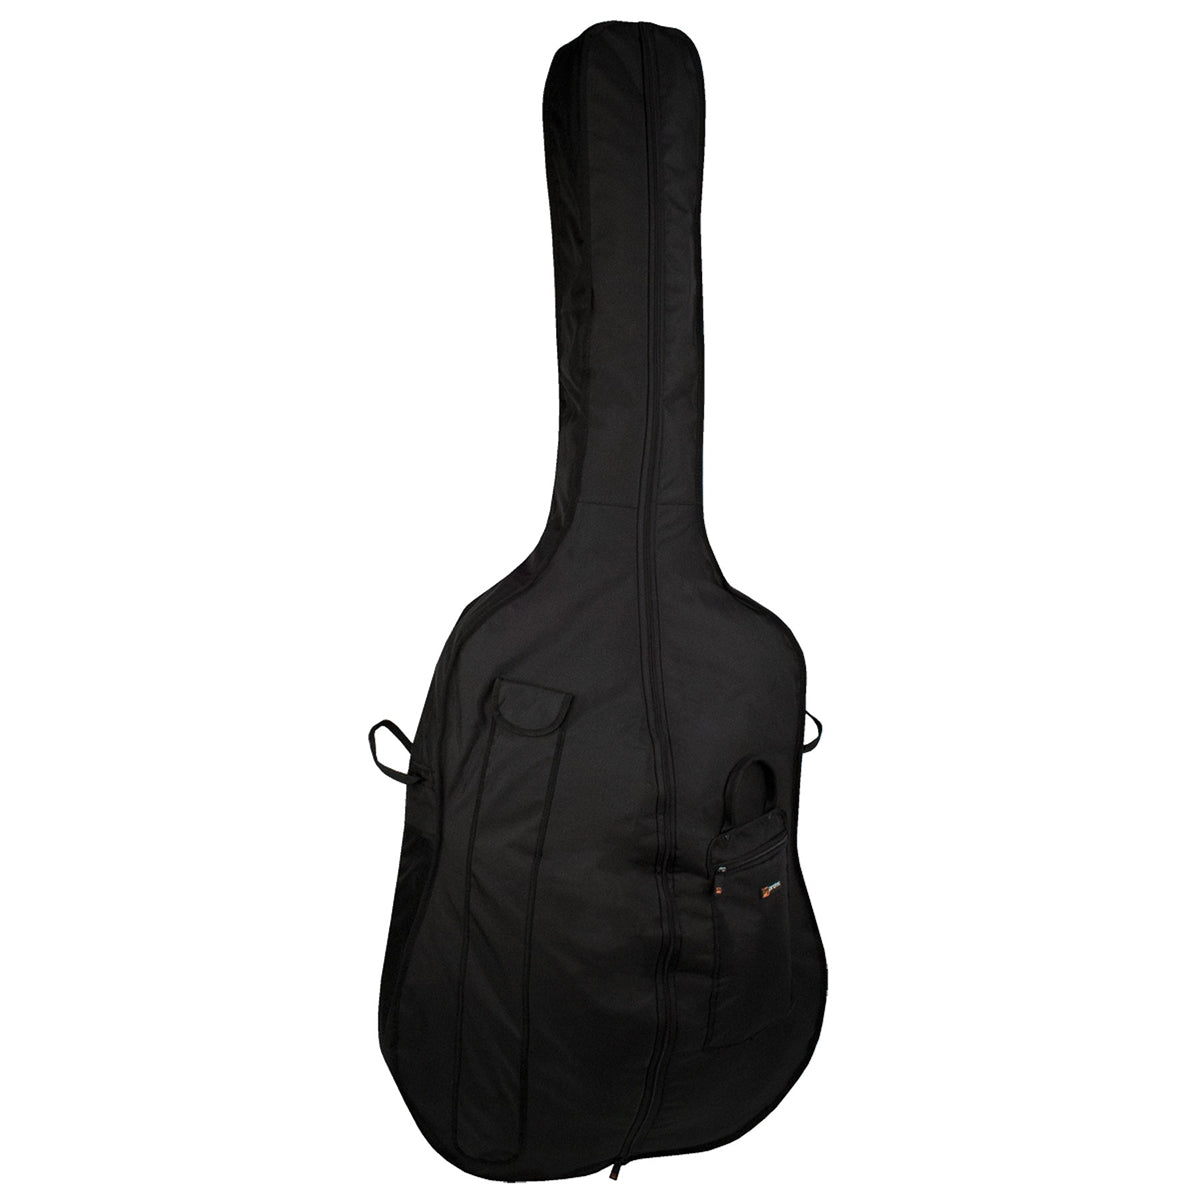 PROTEC 3/4 String Bass Gig Bag - Silver Series